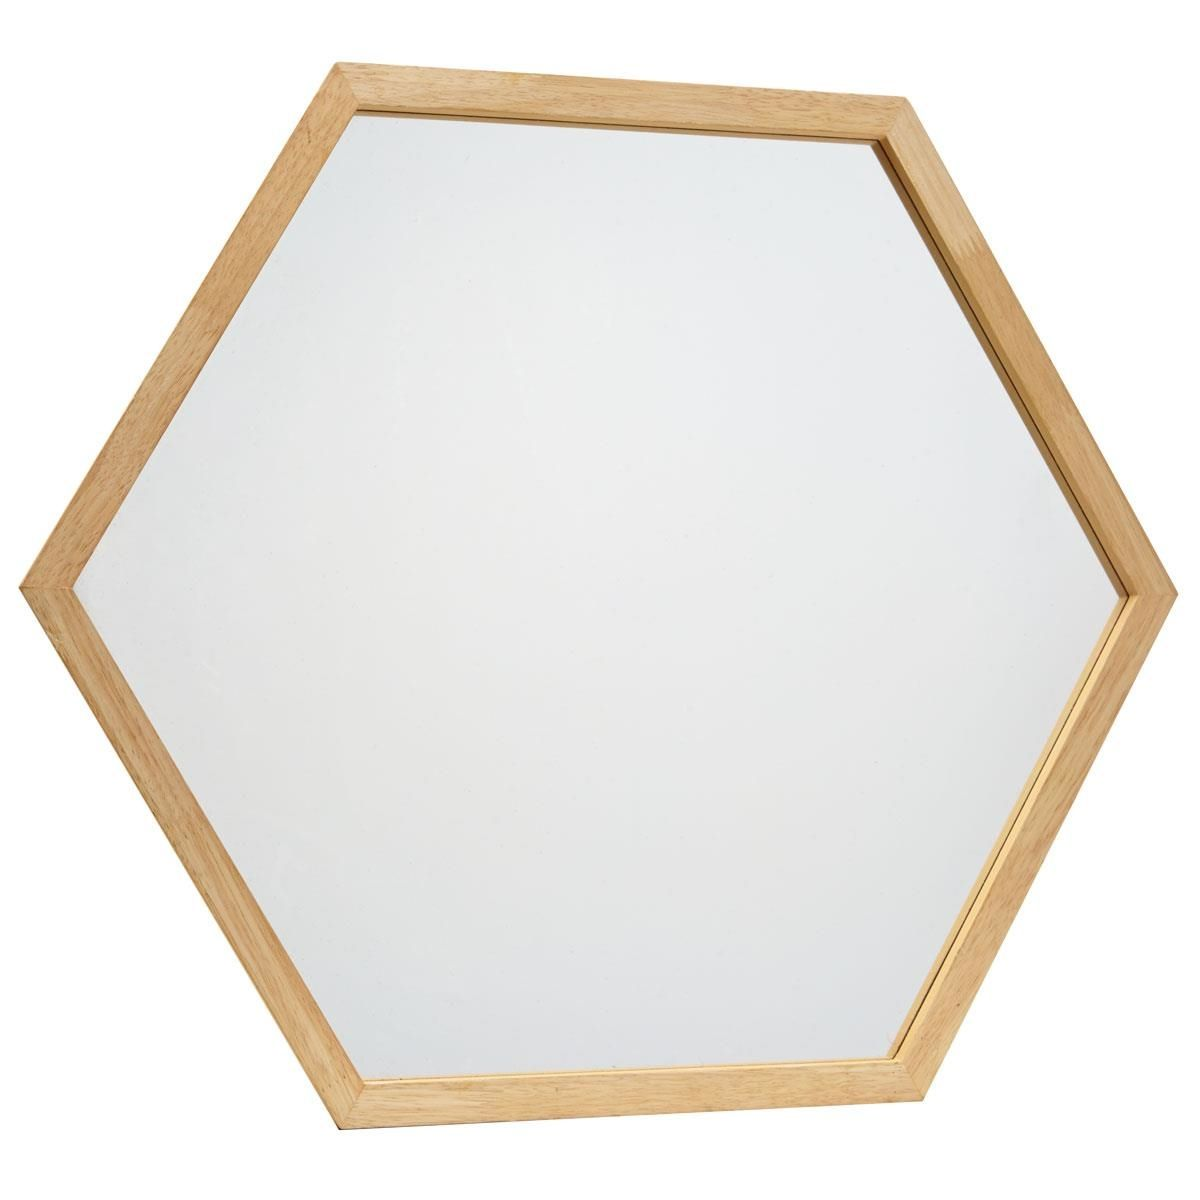 Hexagon mirror house dreaming pinterest mirror bedroom and